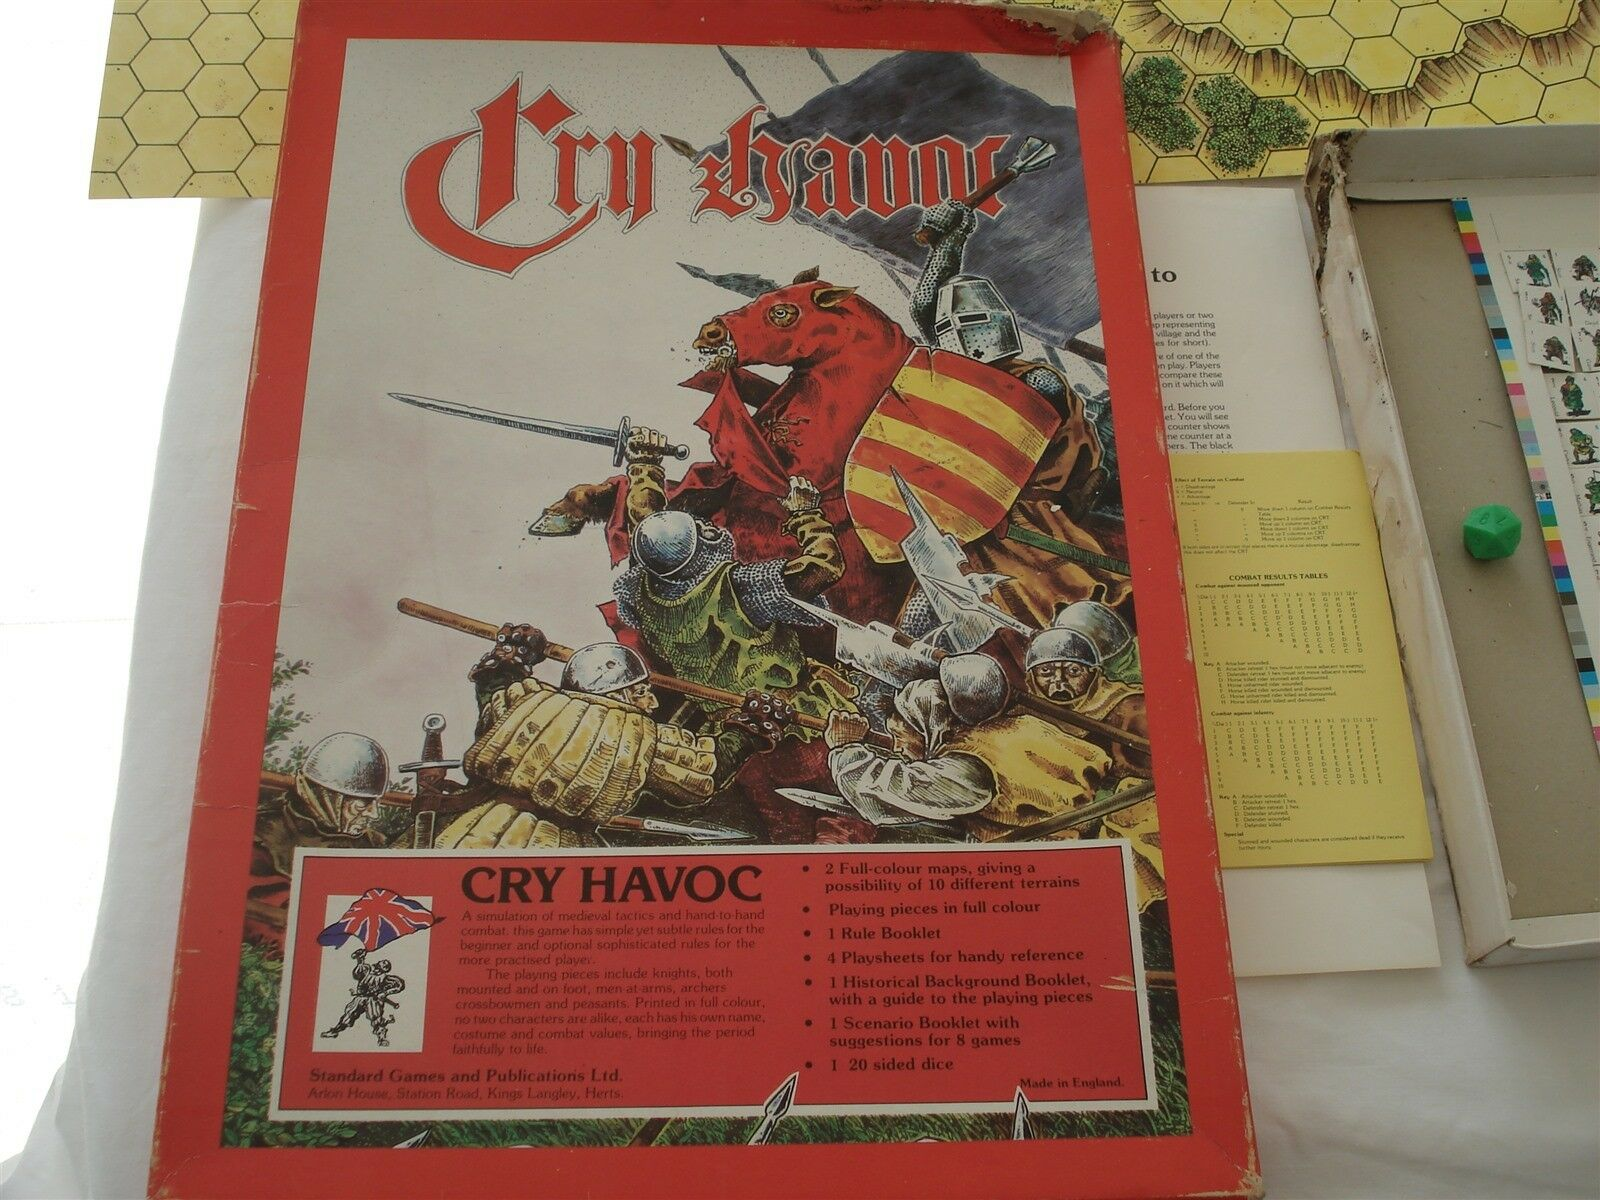 CRY HAVOC GAME - STANDARD GAMES - 1981 - CRY HAVOC - 100% - RARE - COMBAT GAME